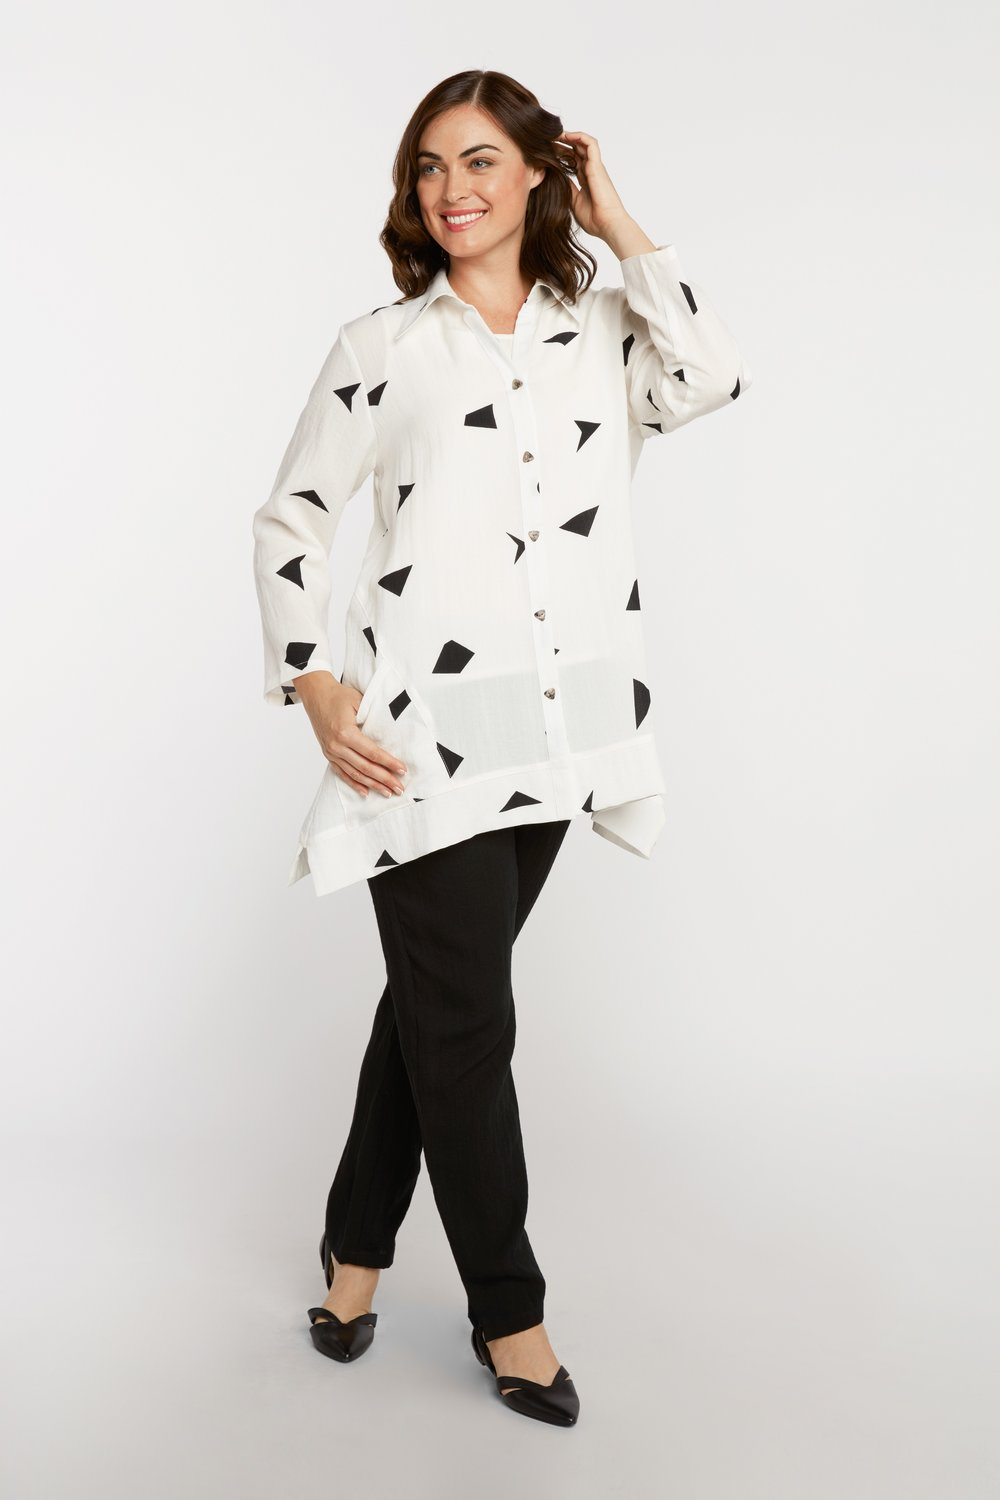 AA222 - Triangle Tunic    Shapes on White - CL9239